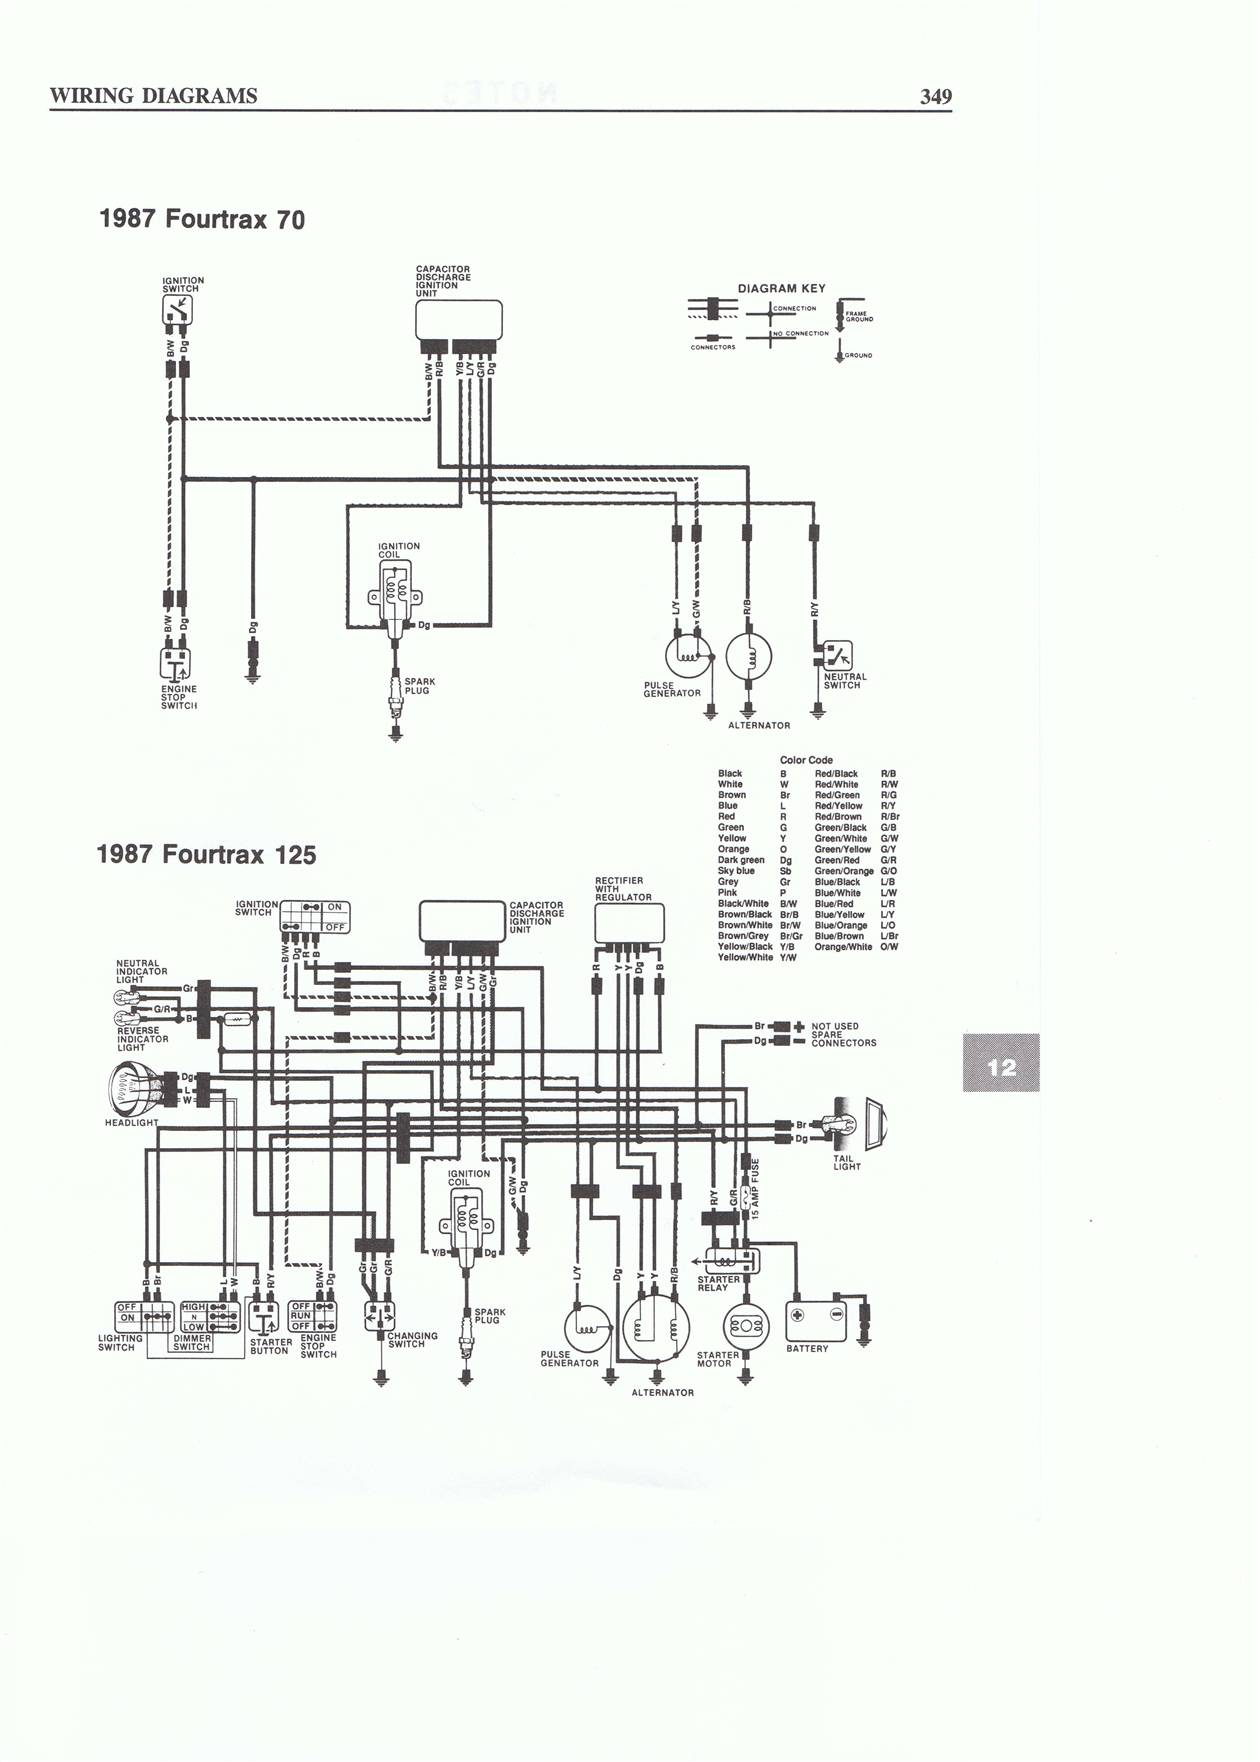 gy6 engine wiring diagram vento zip r3i wiring diagram bmw wiring diagram, verucci wiring vento triton r4 wiring diagram at bayanpartner.co